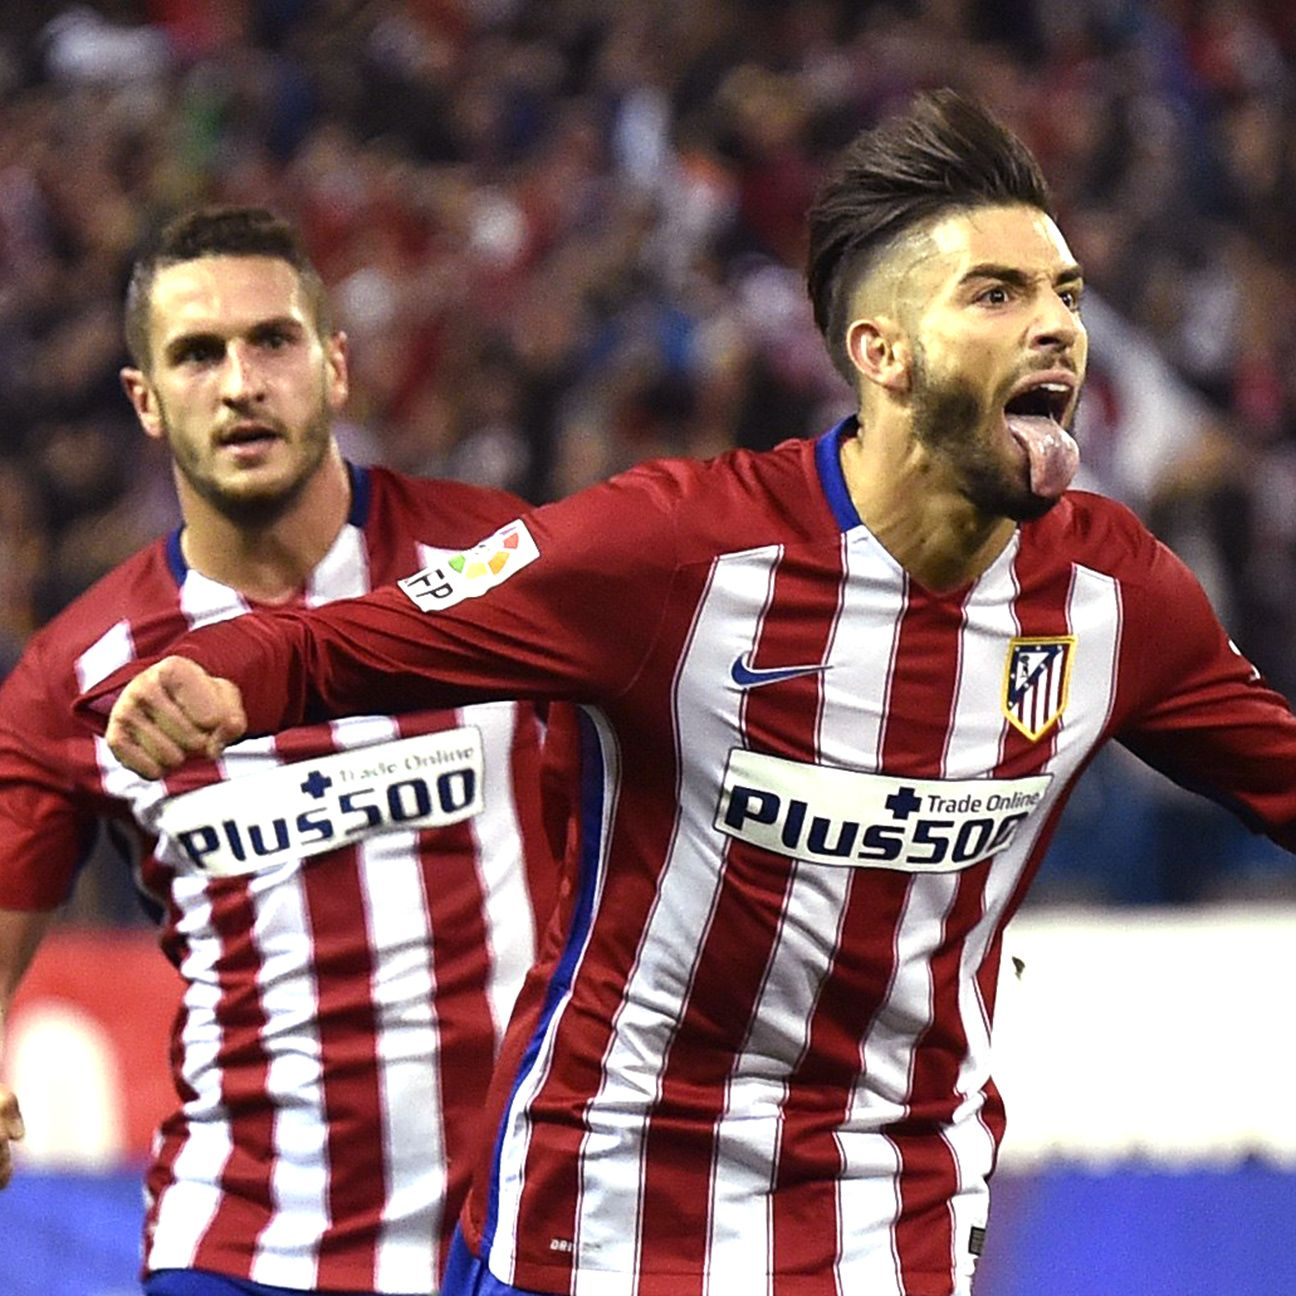 Yannick Carrasco has now scored in two straight La Liga matches for Atletico.